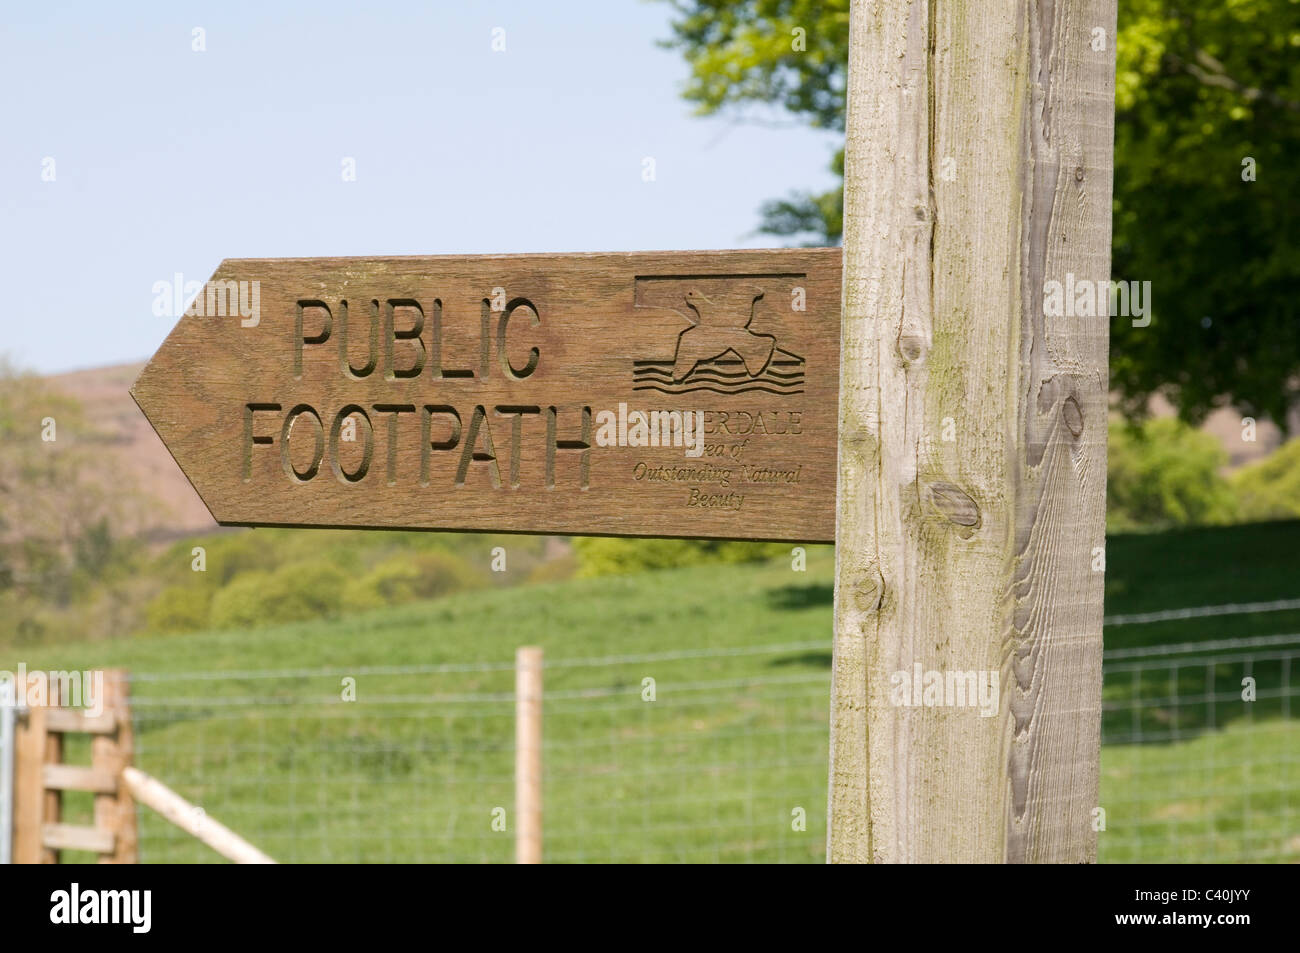 public footpath foot path paths footpaths sign signs right of way rights access to countryside country side post - Stock Image